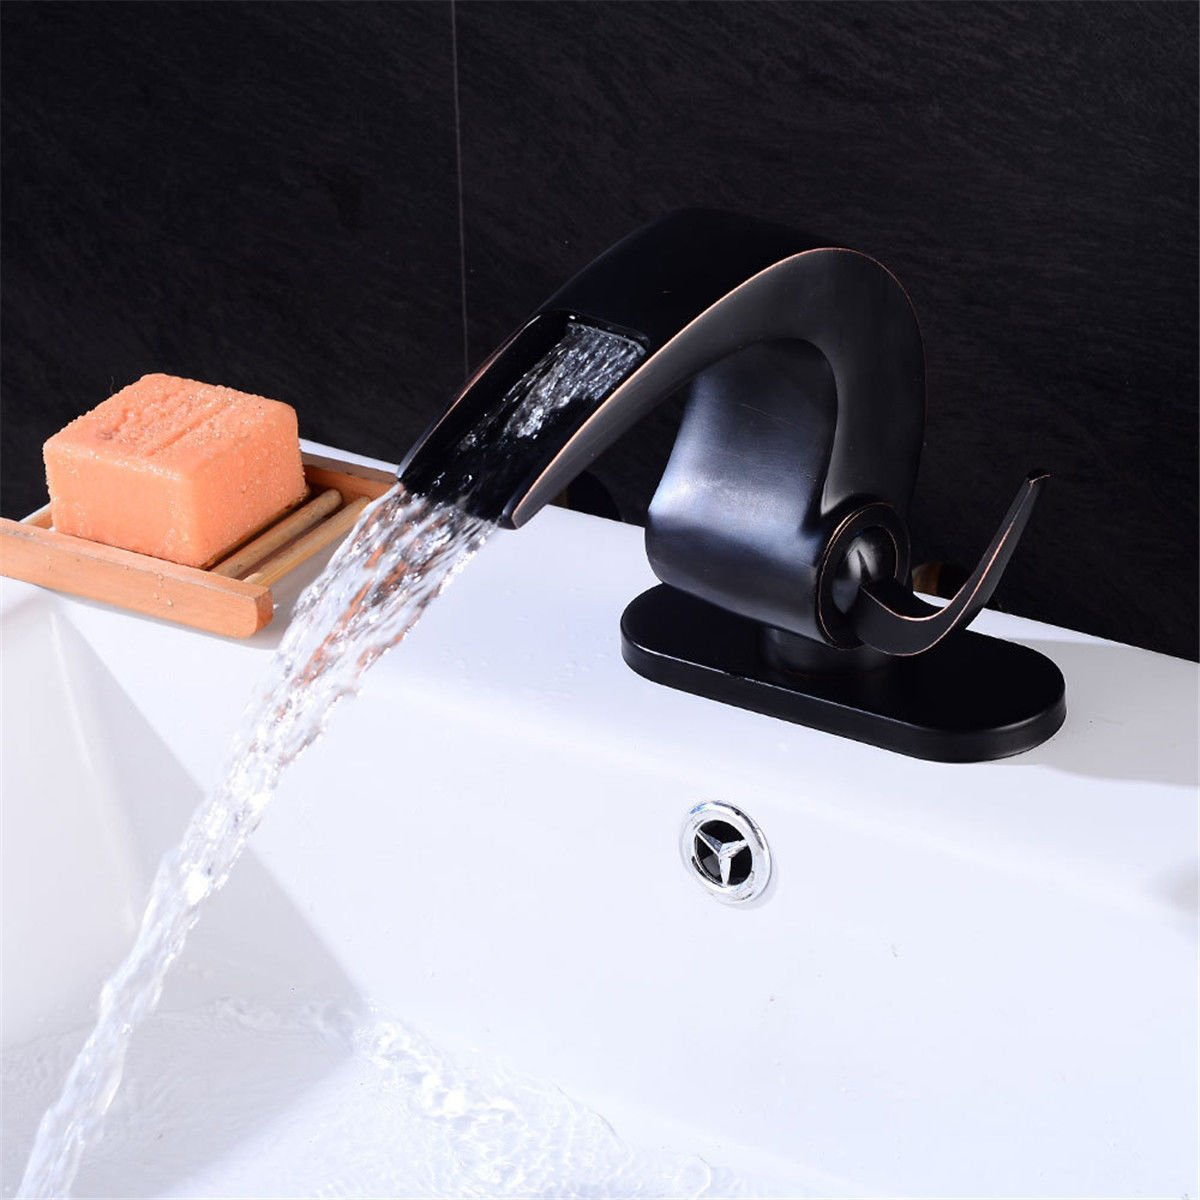 Xicaimen Basin Sink Mixer Tap Chrome Bathroom Faucet Black Hot and Cold Water Waterfall Single Lever Basin Sink Mixer Taps Waterfall Bathroom Sink Faucet